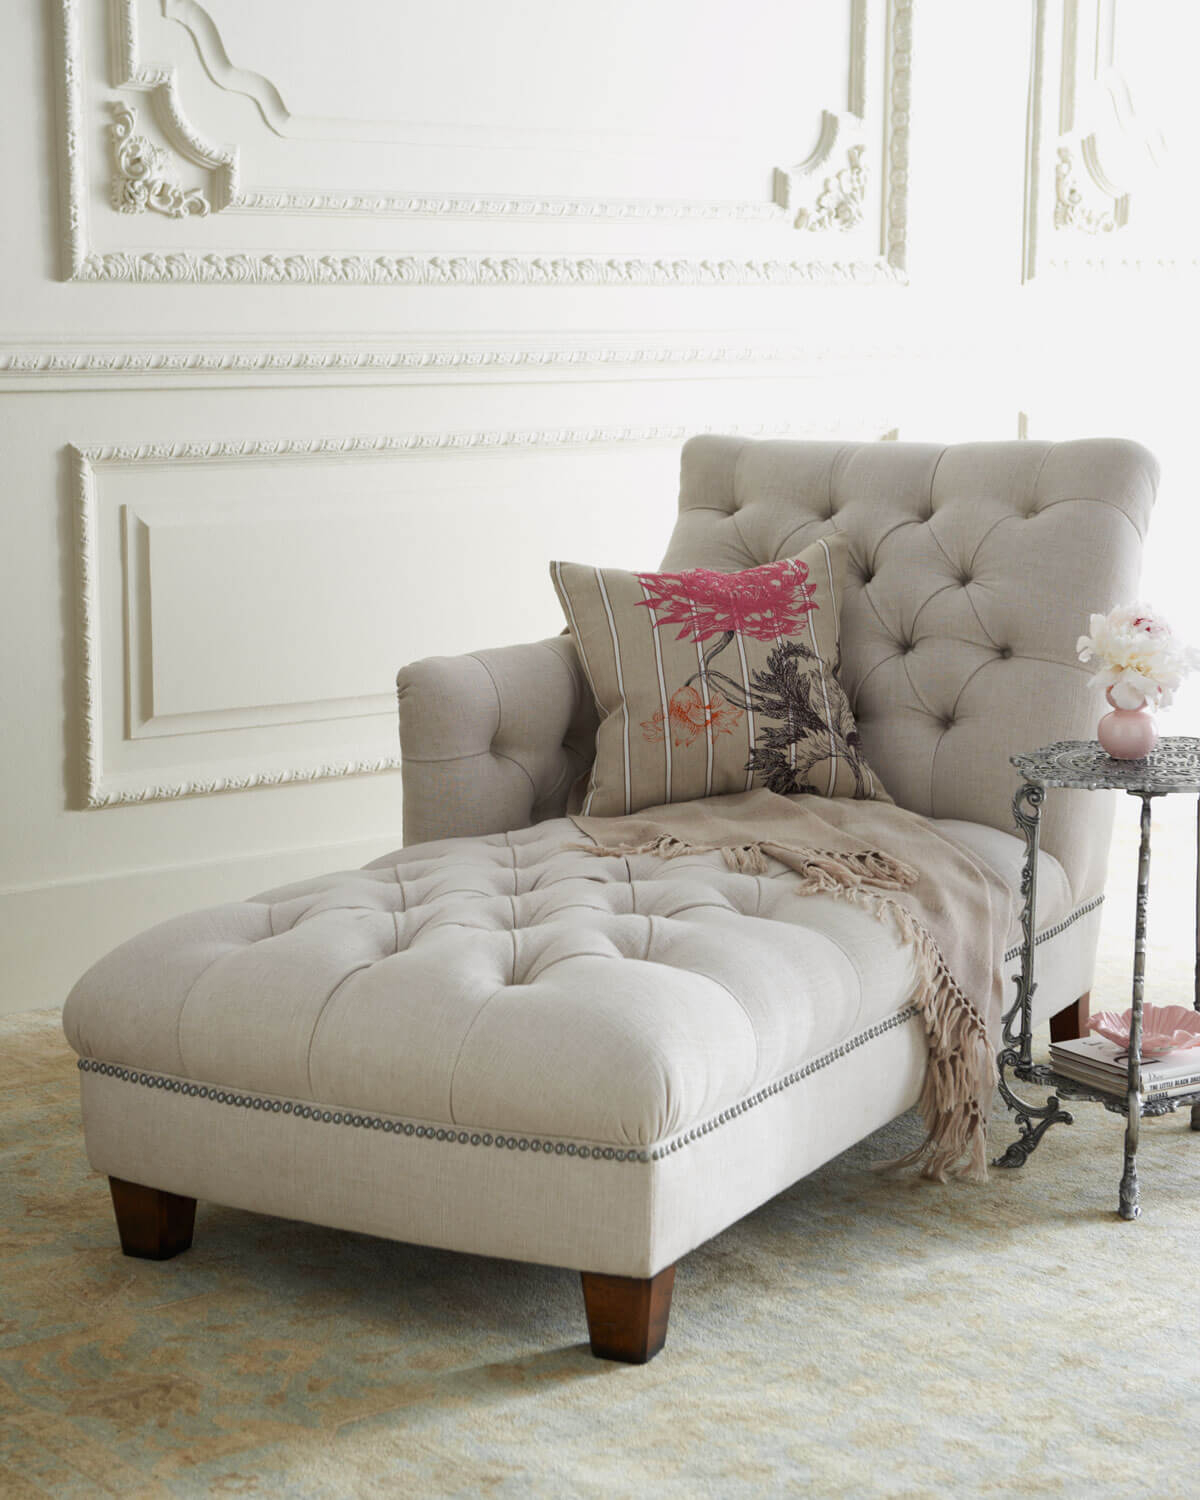 Tufted Chaise Lounge Chair Ideas On Foter